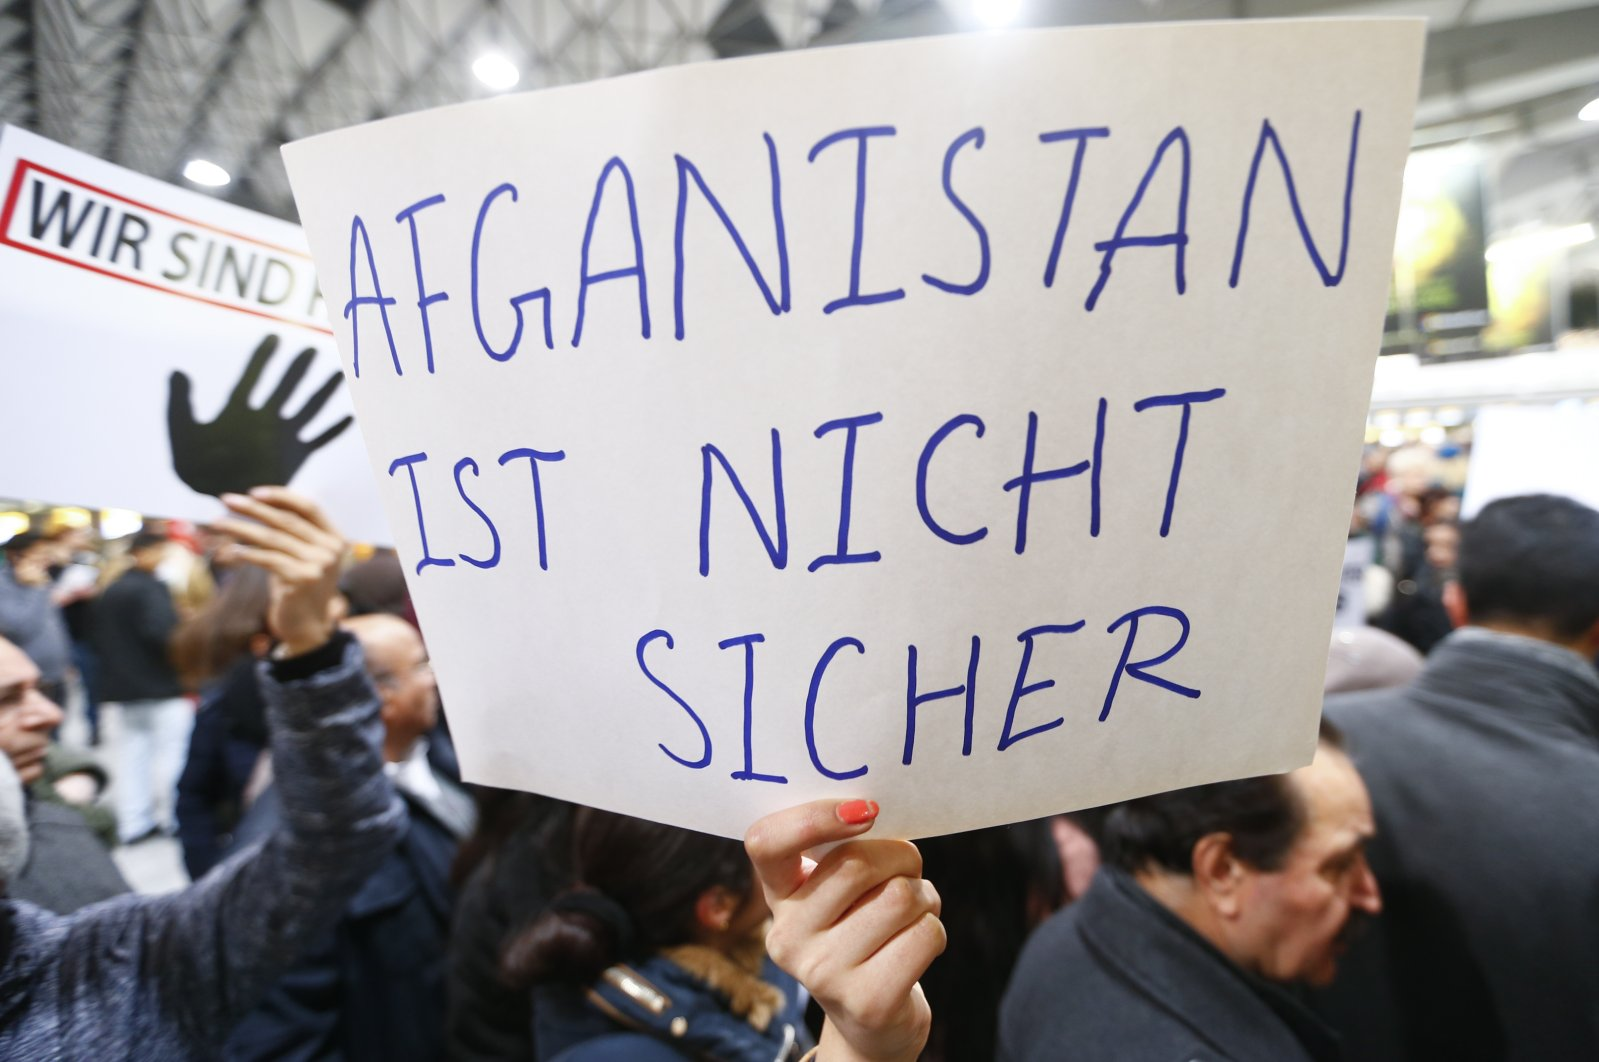 """Protesters hold a placard reading """"Afghanistan is not secure"""" during a demonstration against the deportation of Afghan asylum seekers from Germany back to Afghanistan, at Frankfurt Airport, Germany, Dec. 14, 2016. (Reuters Photo)"""